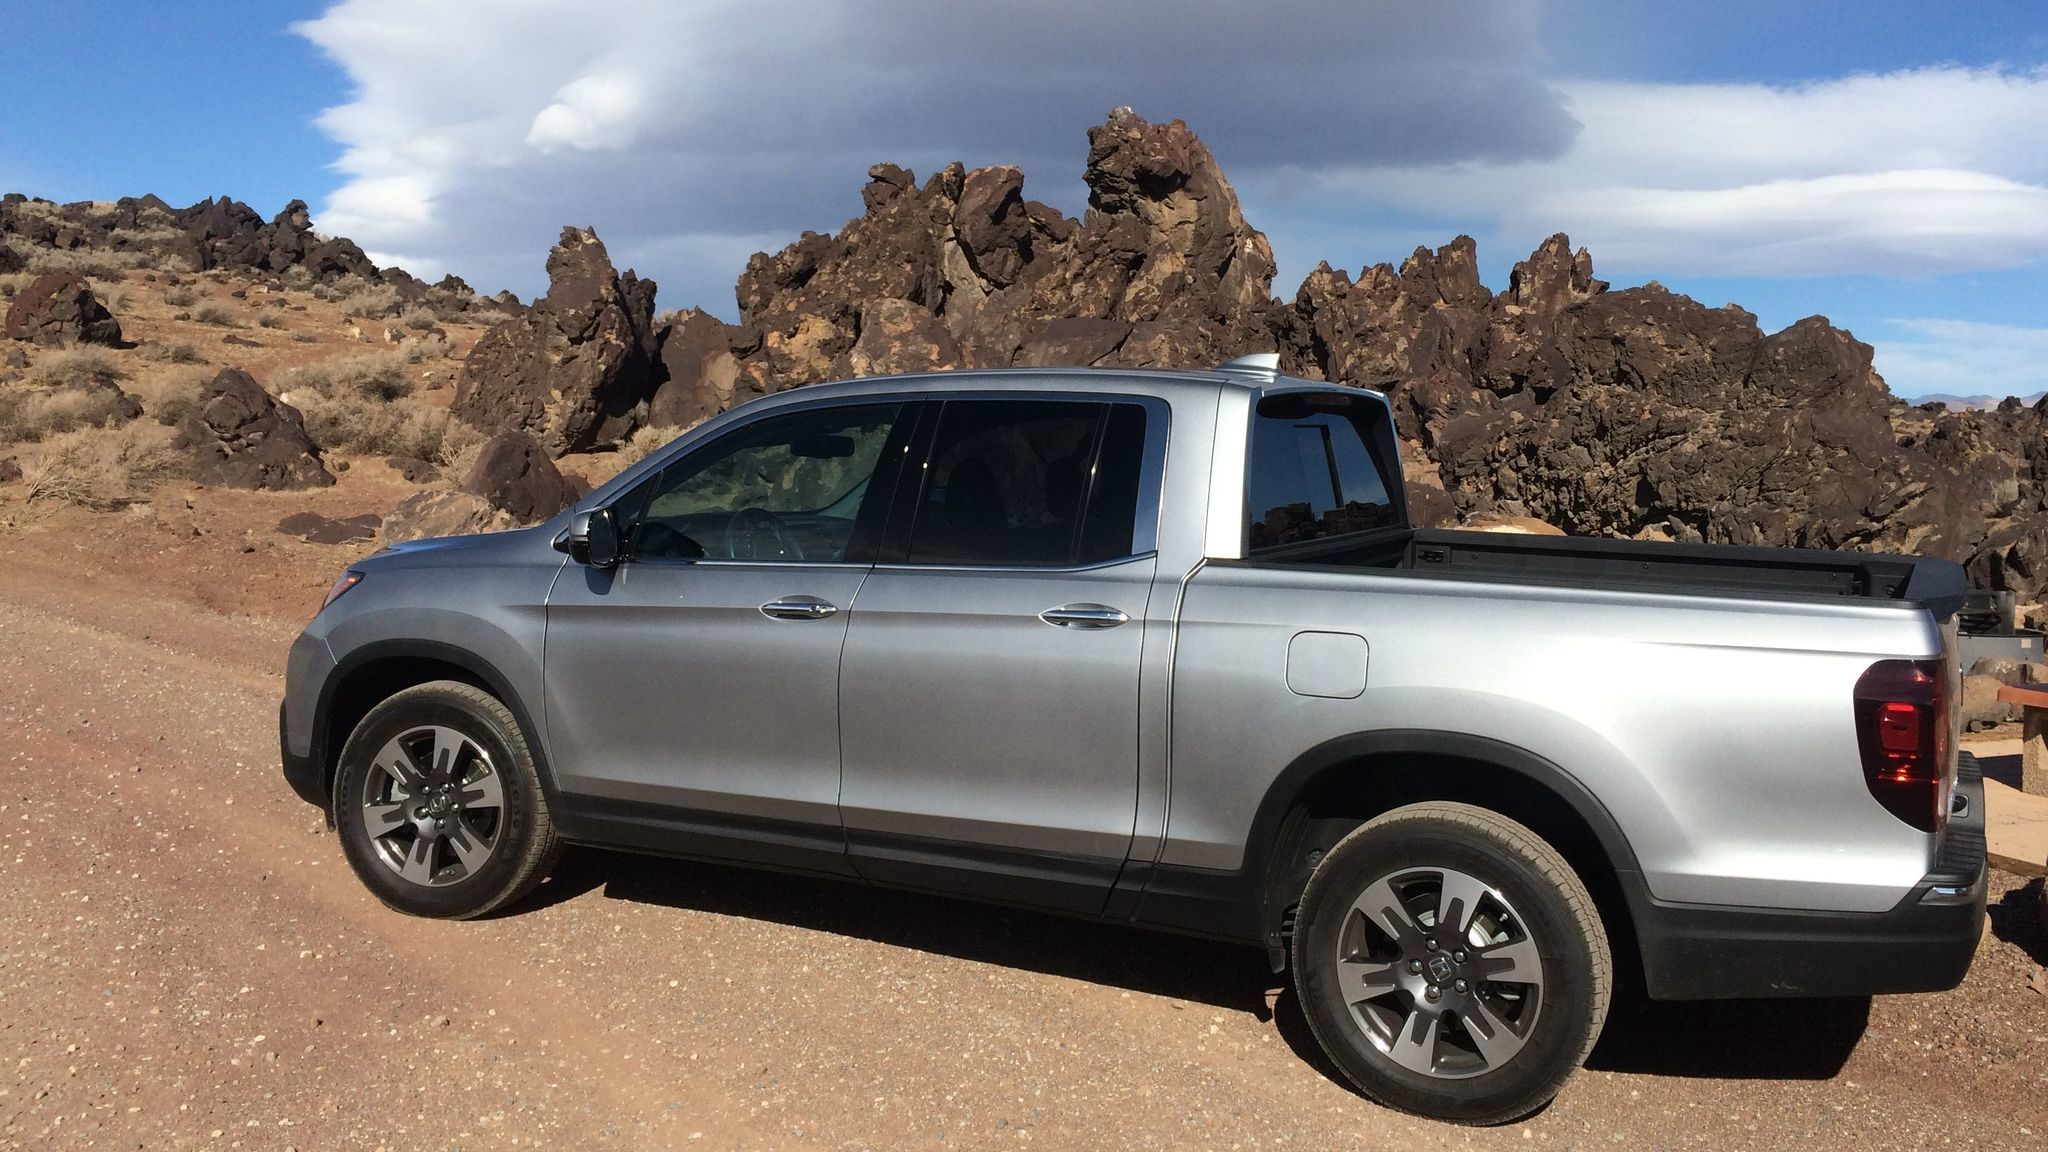 honda 39 s 2017 ridgeline pickup is cool but is it really a truck baltimore sun. Black Bedroom Furniture Sets. Home Design Ideas